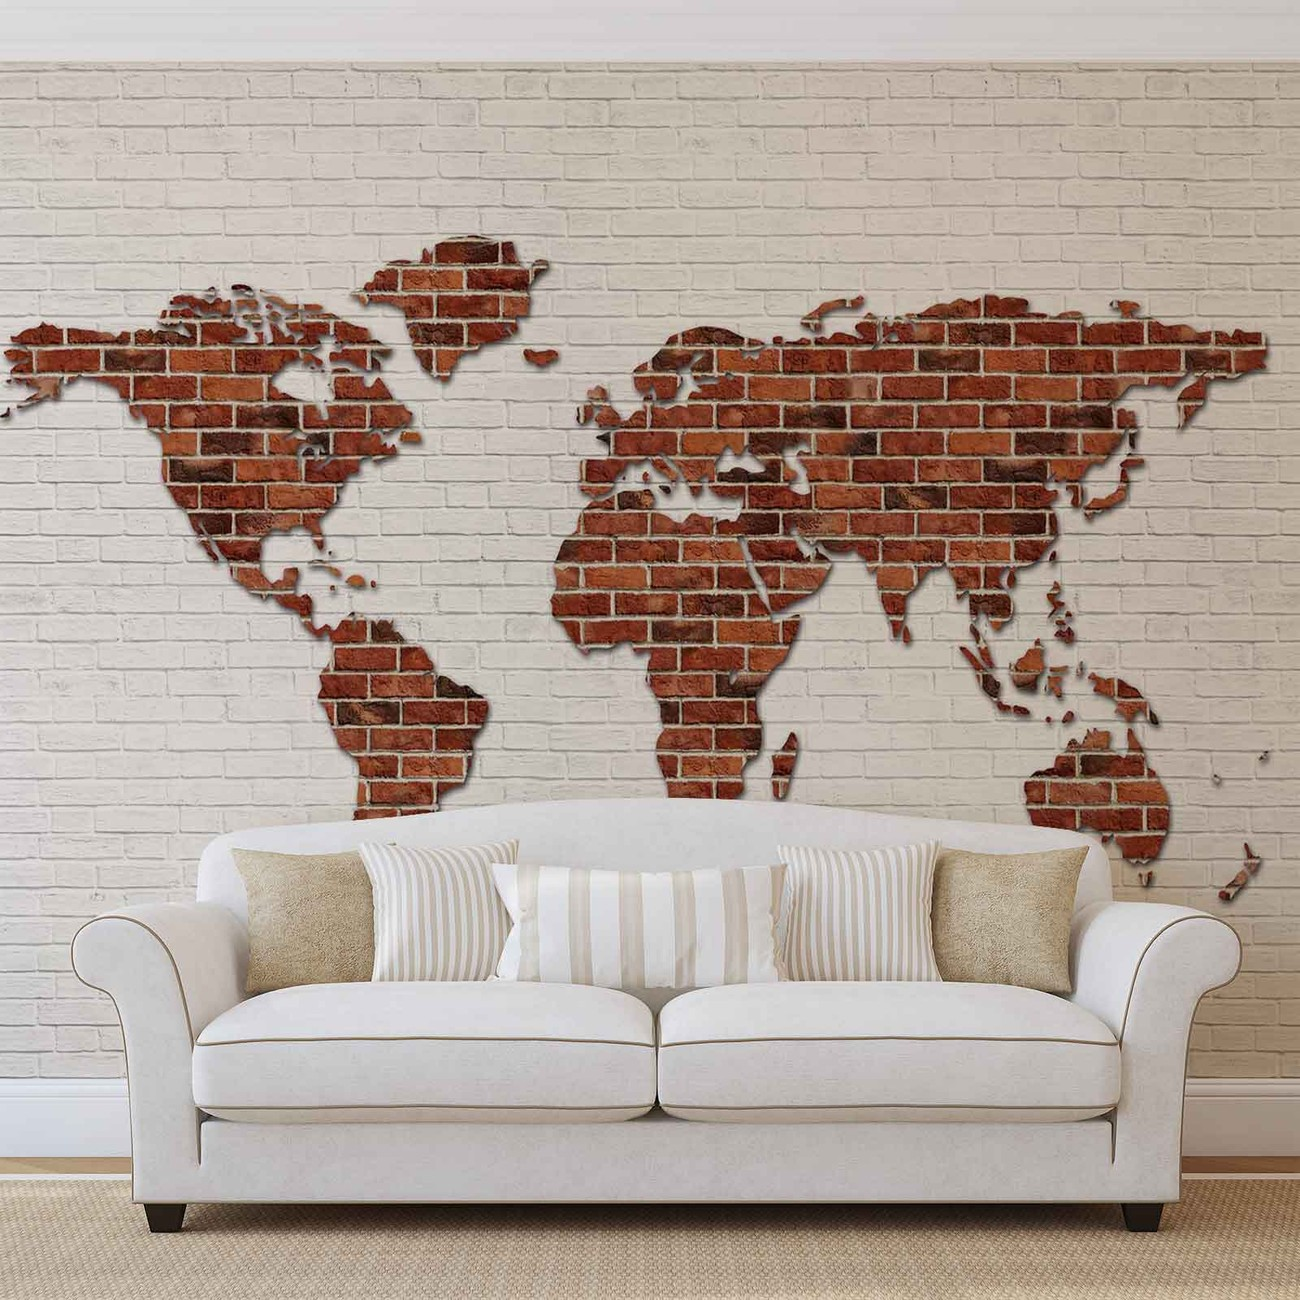 Brick wall world map wall paper mural buy at europosters 5 gumiabroncs Gallery